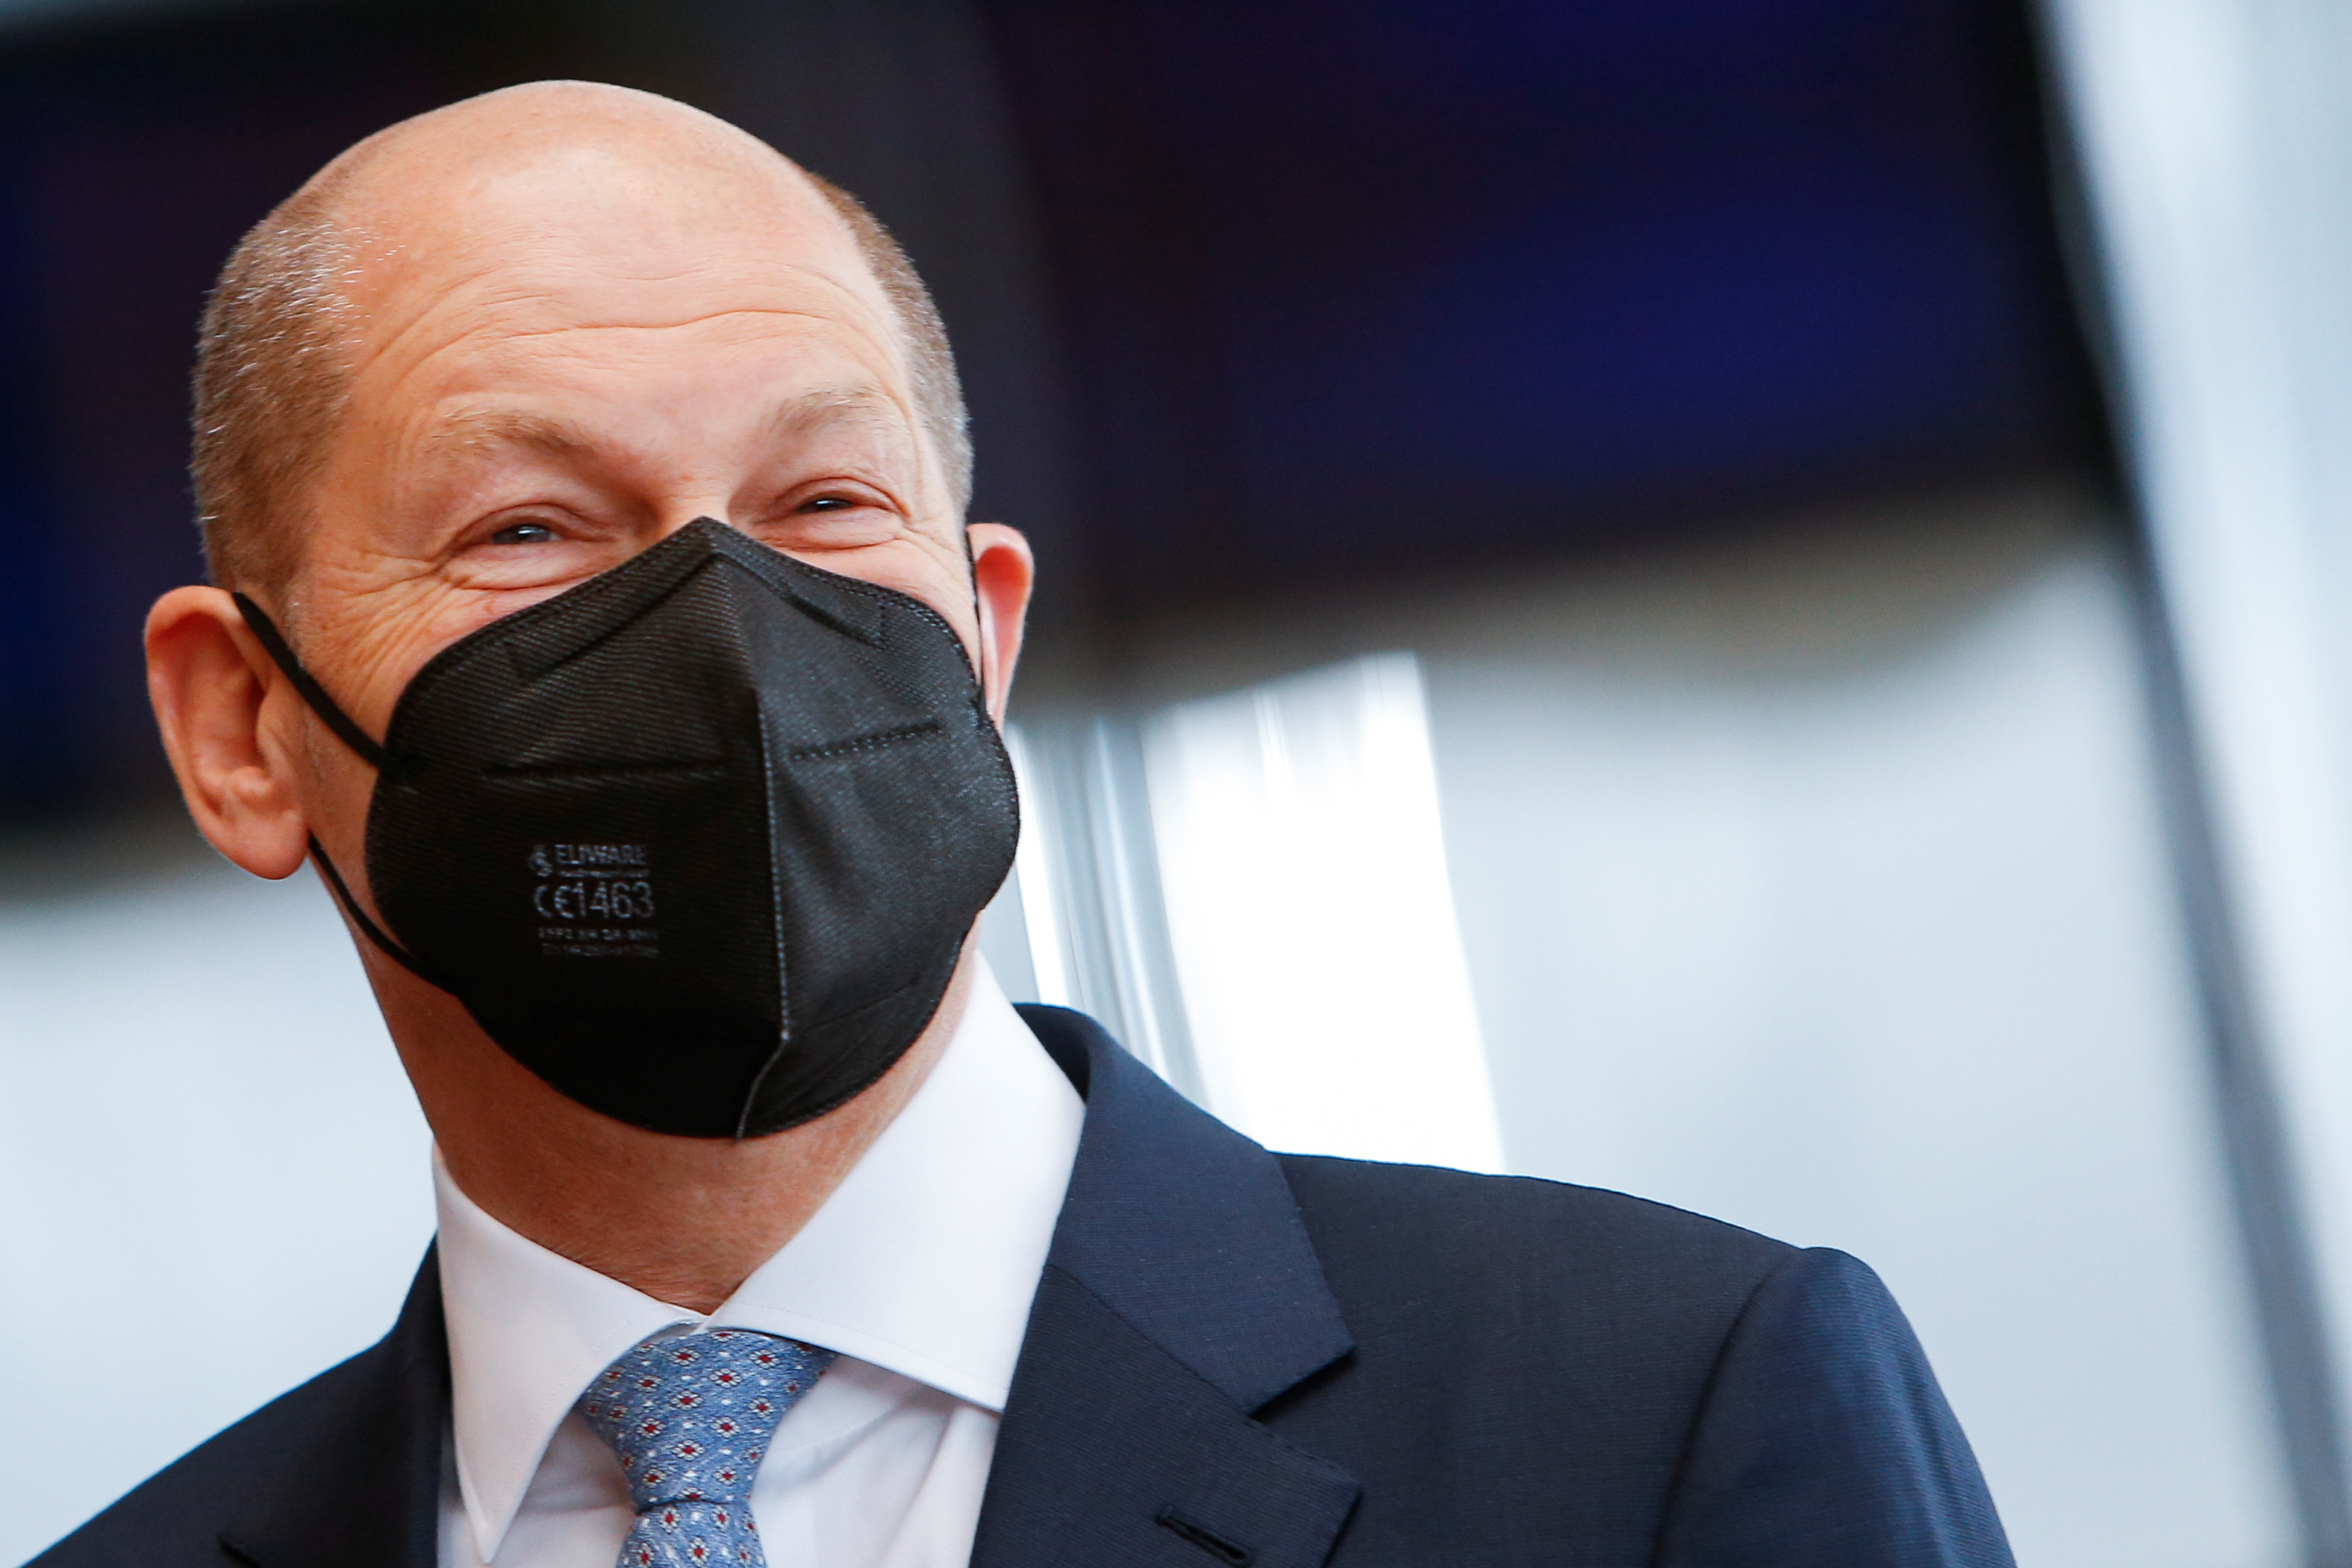 German Finance Minister Olaf Scholz arrives to testify before a parliament committee investigating Wirecard, in Berlin, Germany April 22, 2021. REUTERS/Michele Tantussi/Pool